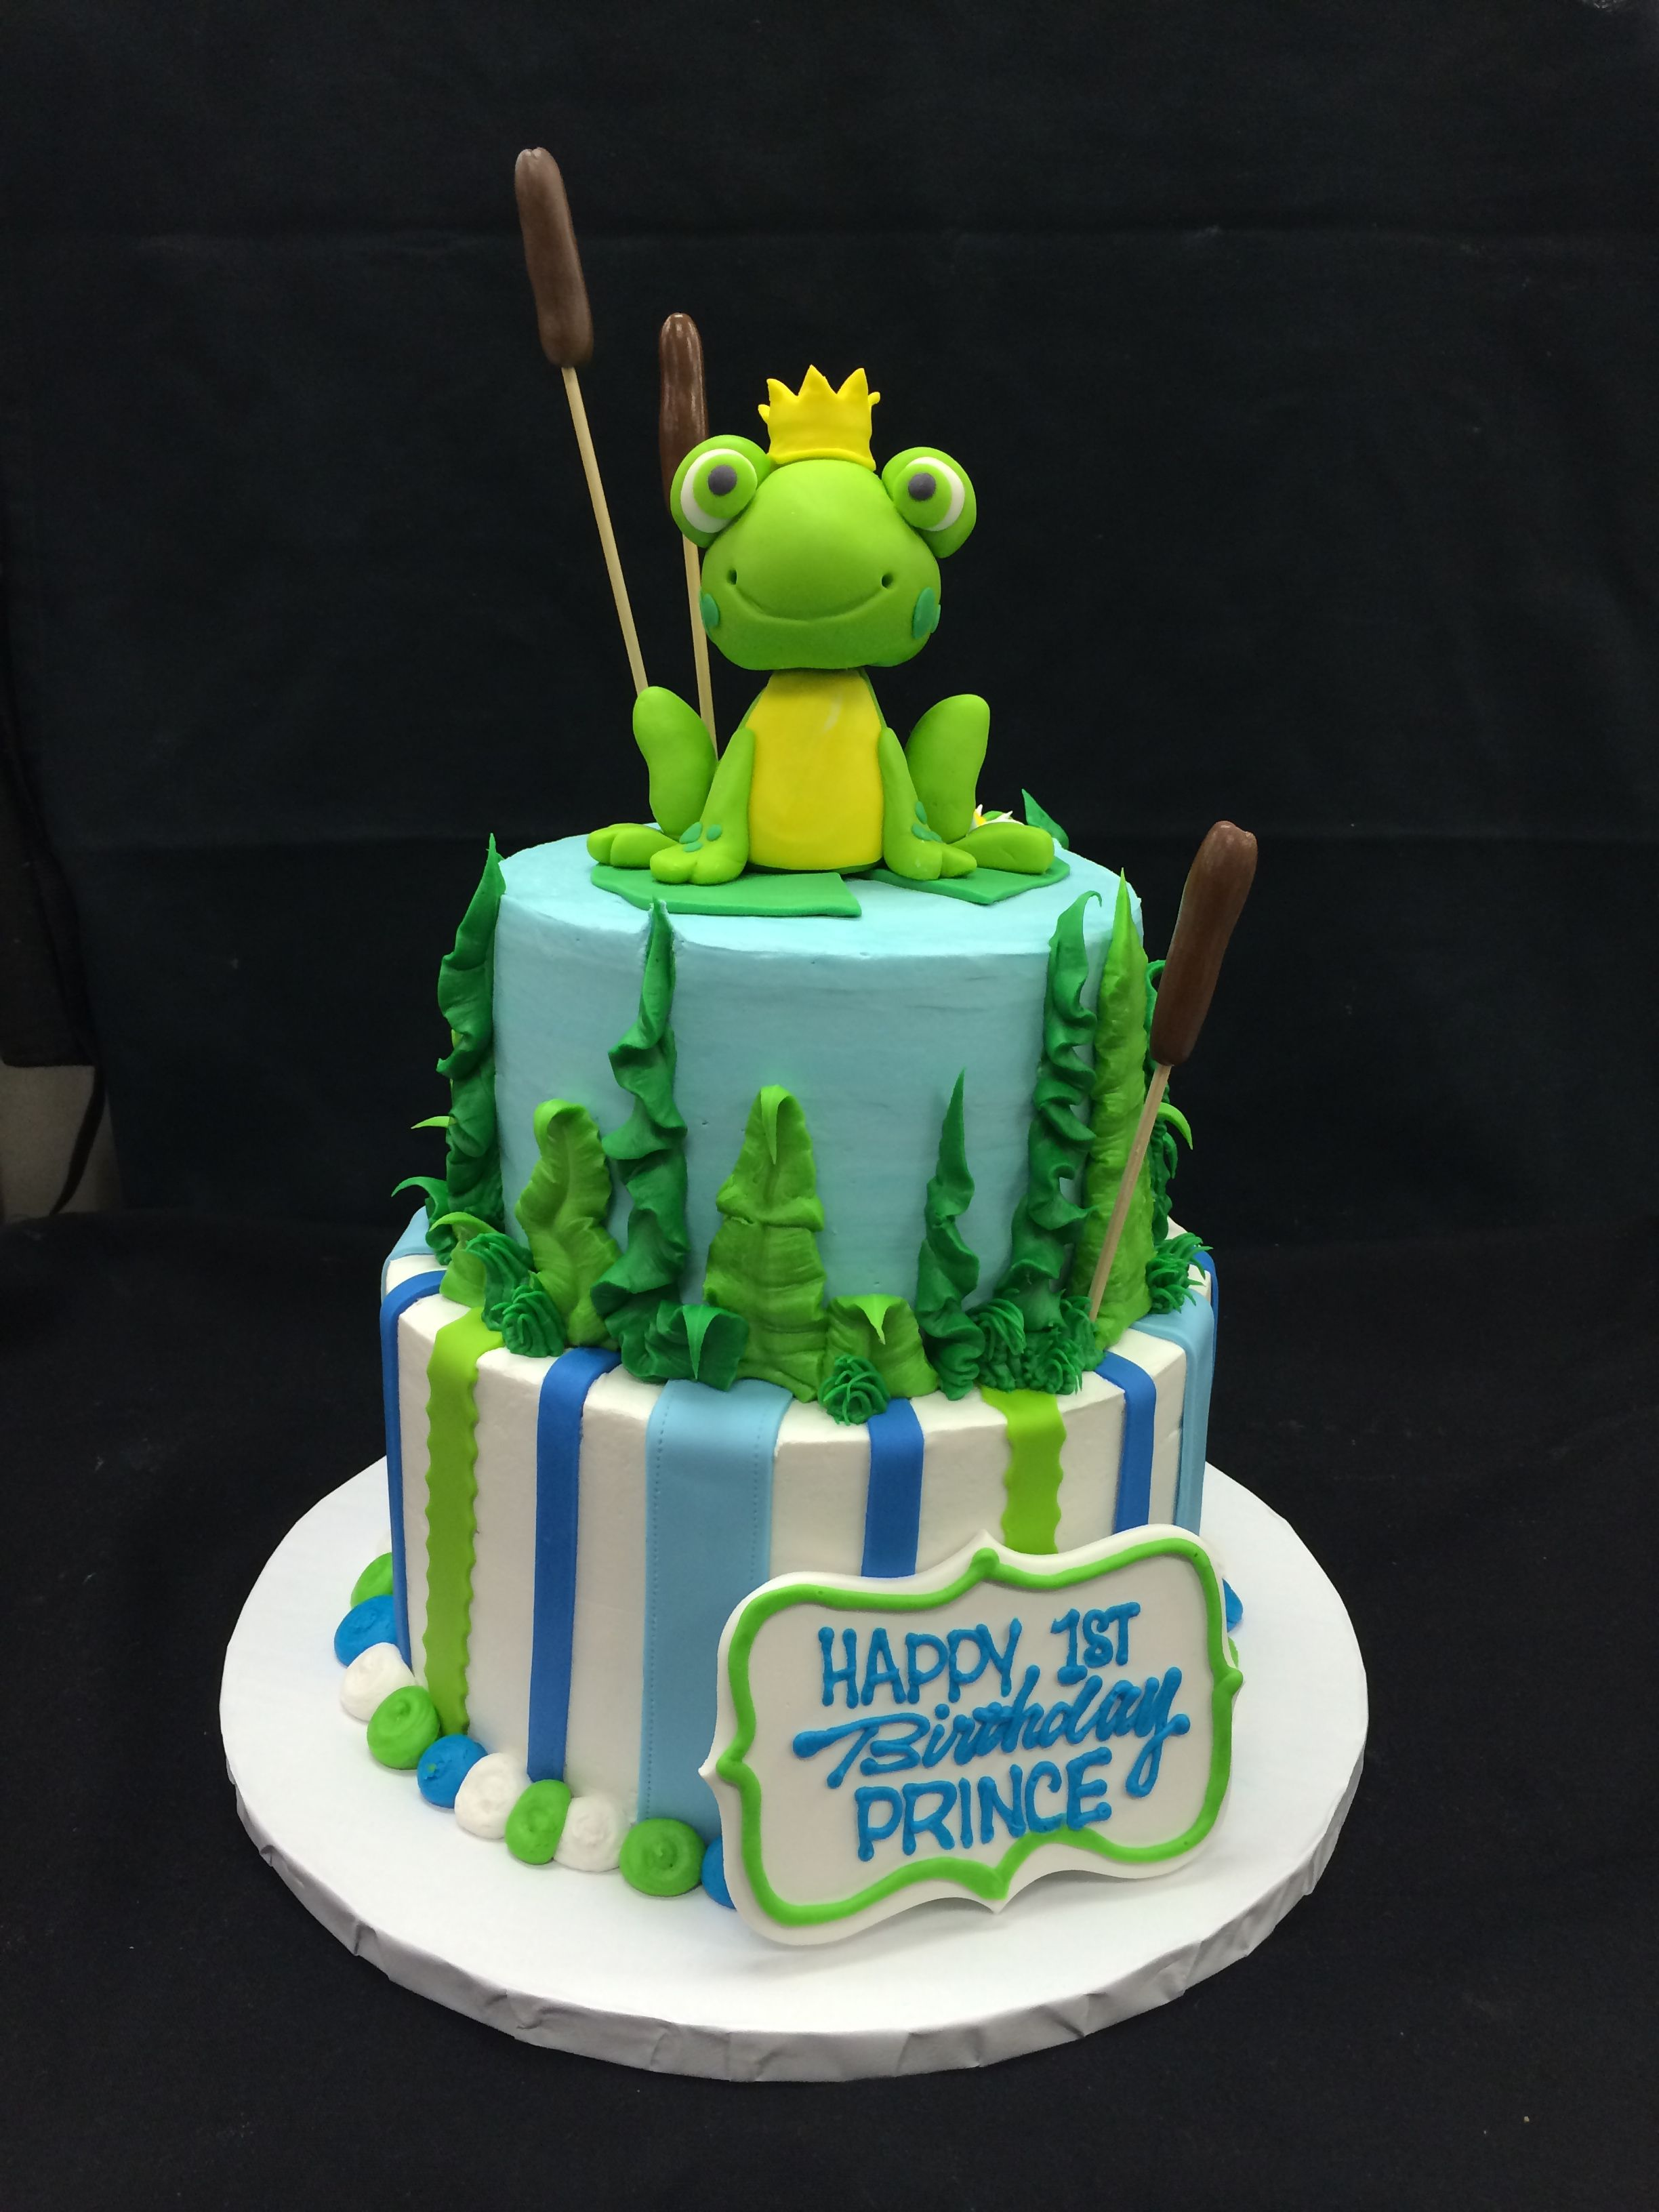 a birthday cake frog prince cake for a birthday fondant frog cake 1193